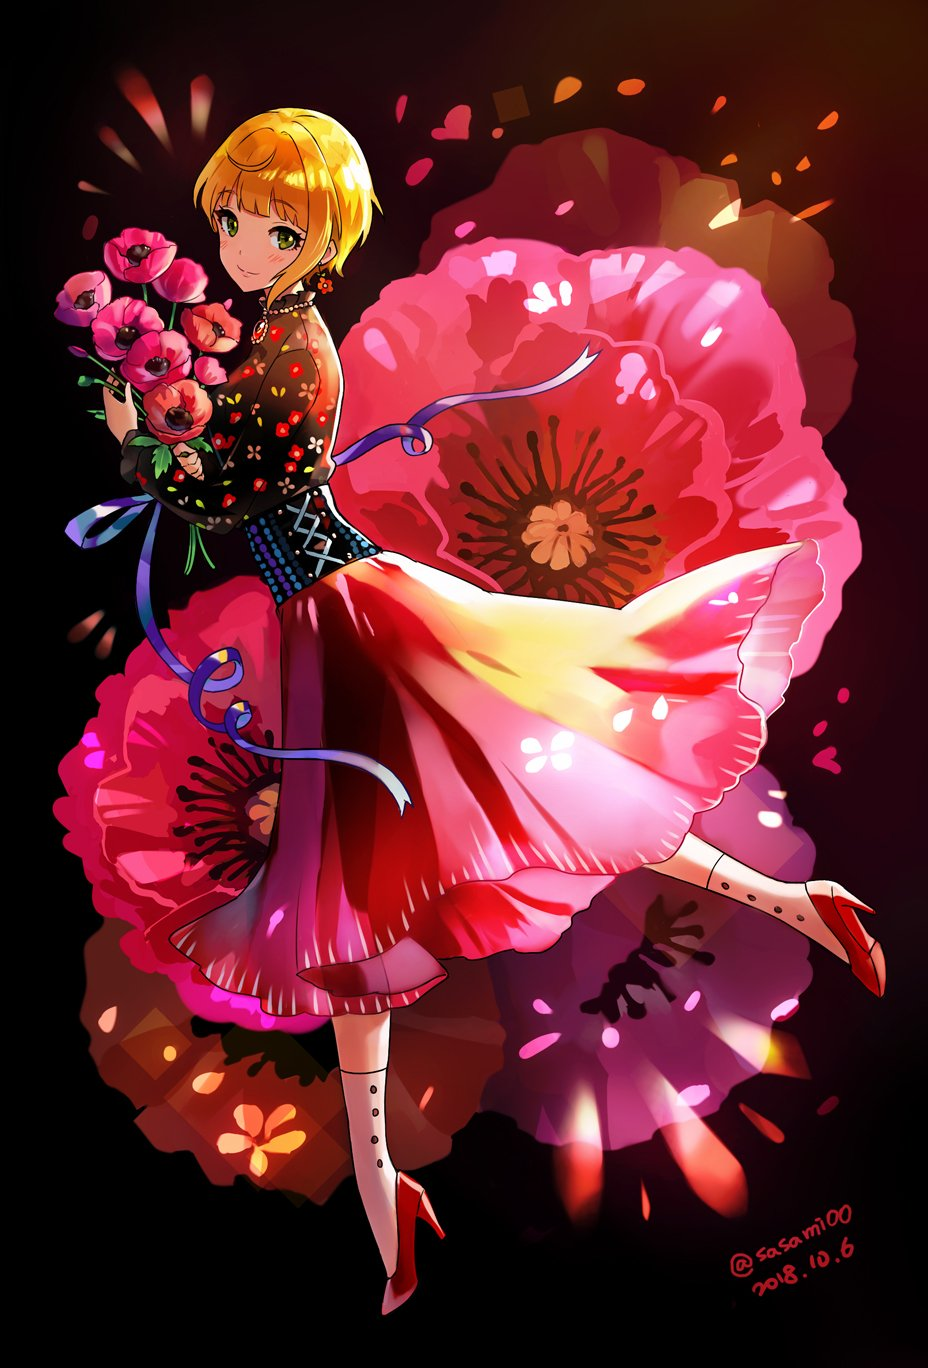 1girl asymmetrical_hair black_background black_blouse blonde_hair blouse blush brooch commentary corset dated earrings eyebrows_visible_through_hair floral_background floral_print flower flower_earrings full_body green_eyes high_heels highres holding holding_flower idolmaster idolmaster_cinderella_girls jewelry light_smile long_skirt long_sleeves looking_at_viewer miyamoto_frederica petals red_footwear red_skirt ribbon short_hair signature skirt solo teki_(kakari) twitter_username white_legwear